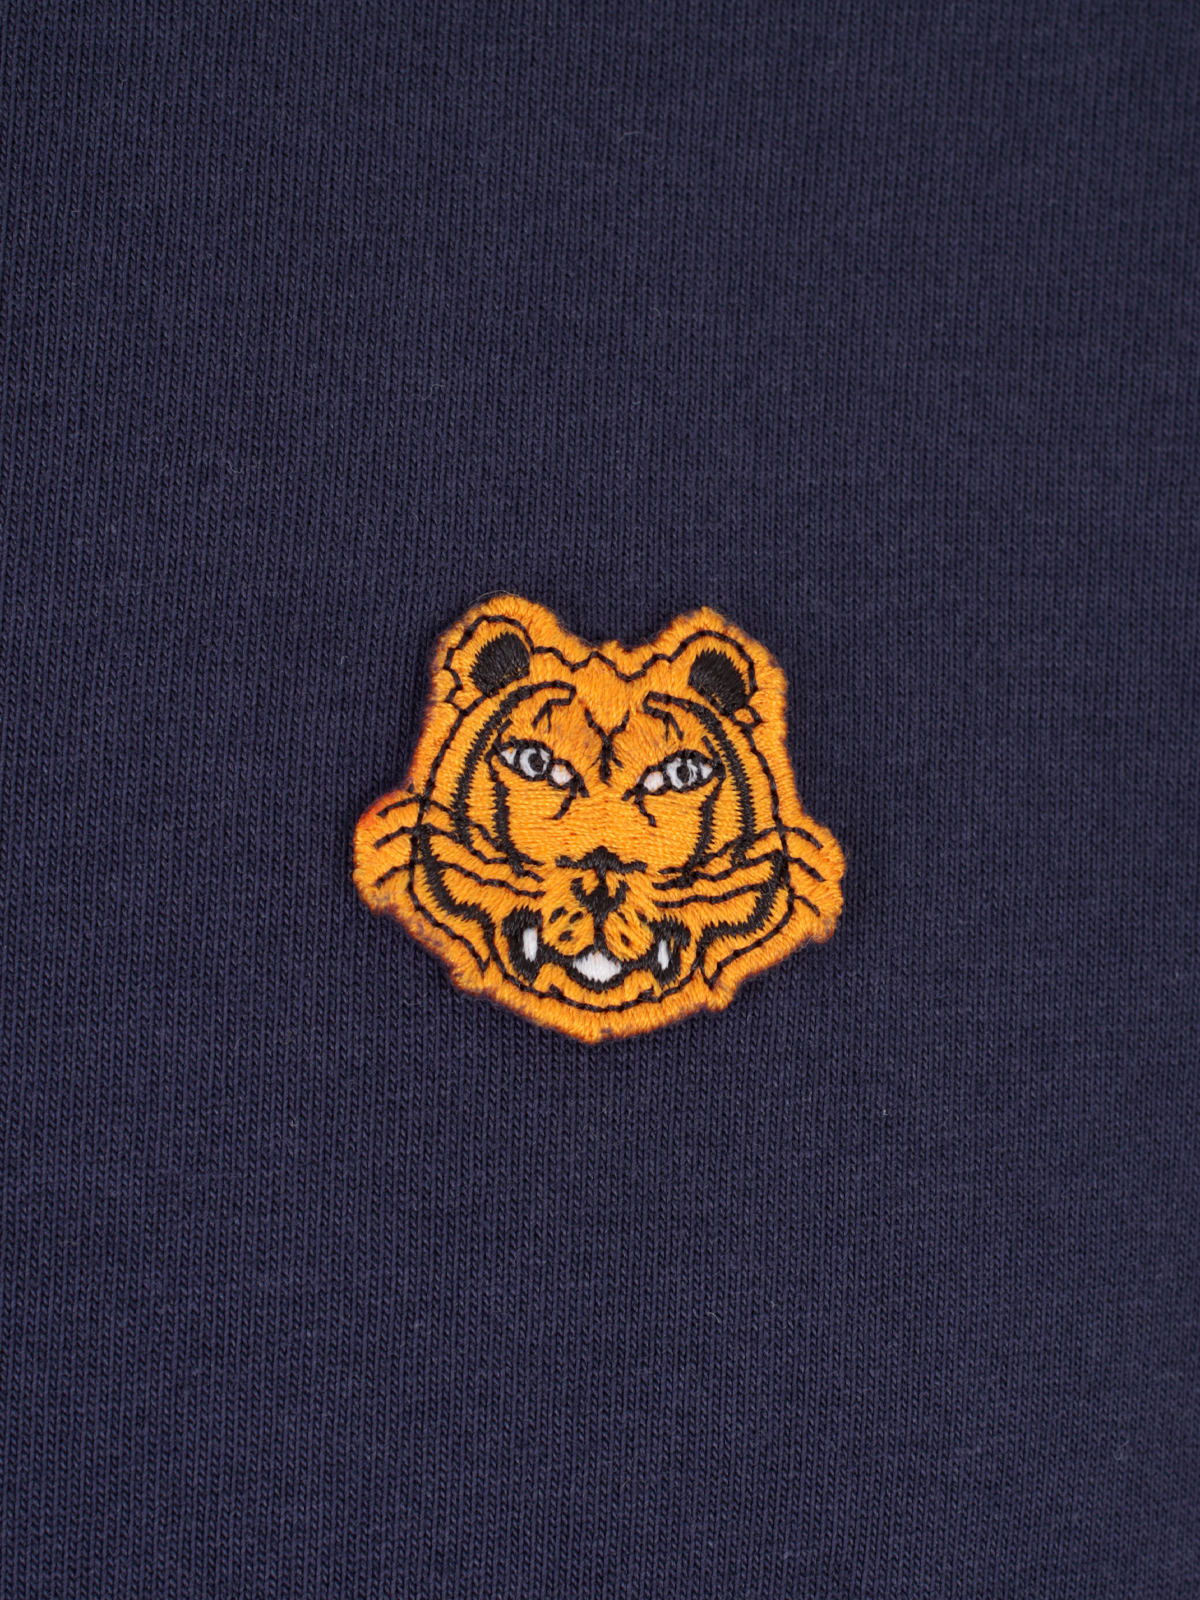 Picture of Kenzo Tshirt